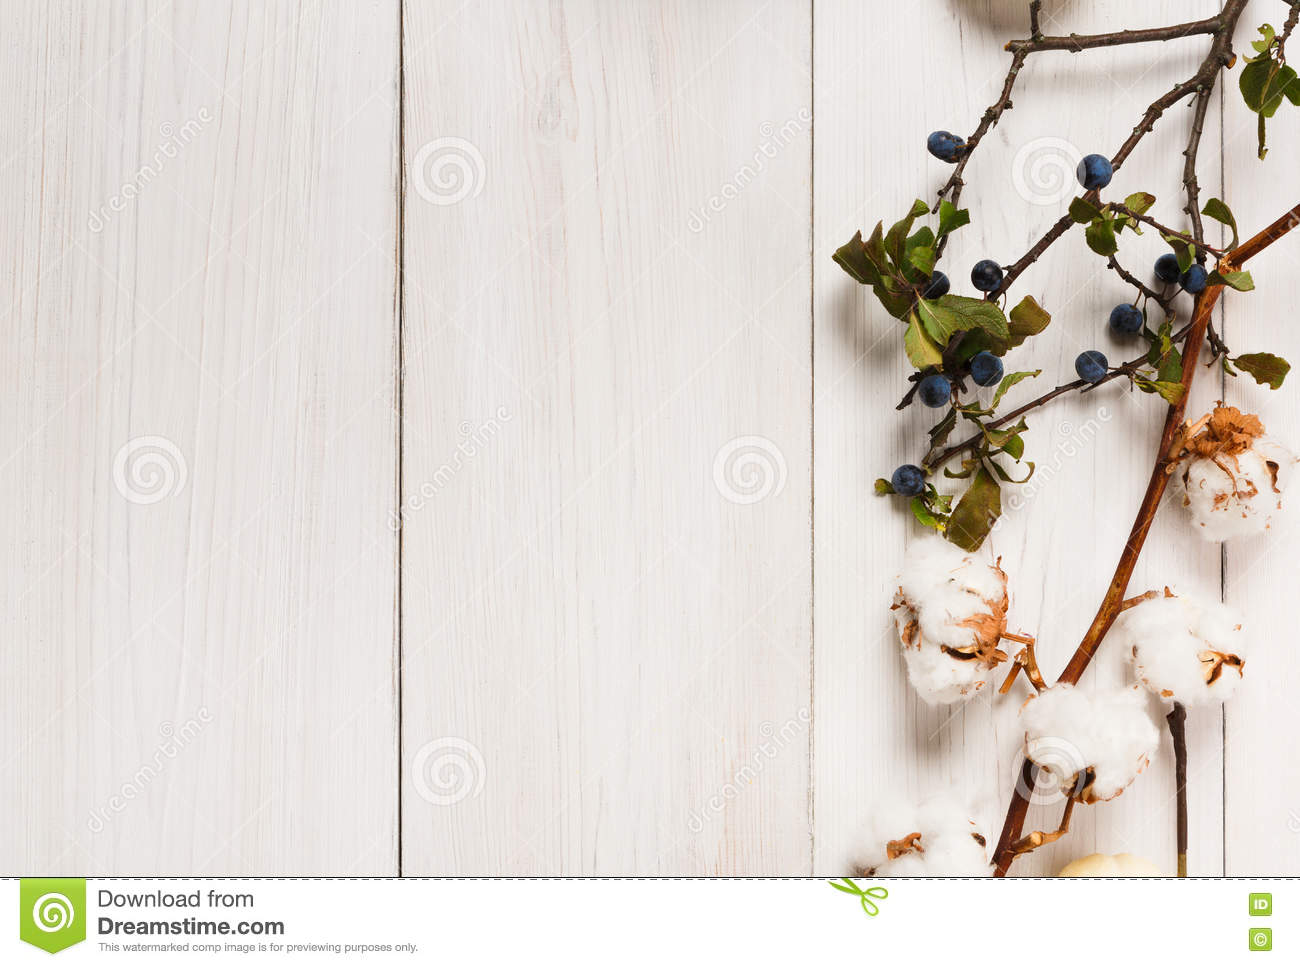 Autumn Border Of Dried Flowers On White Wood Background Stock Image